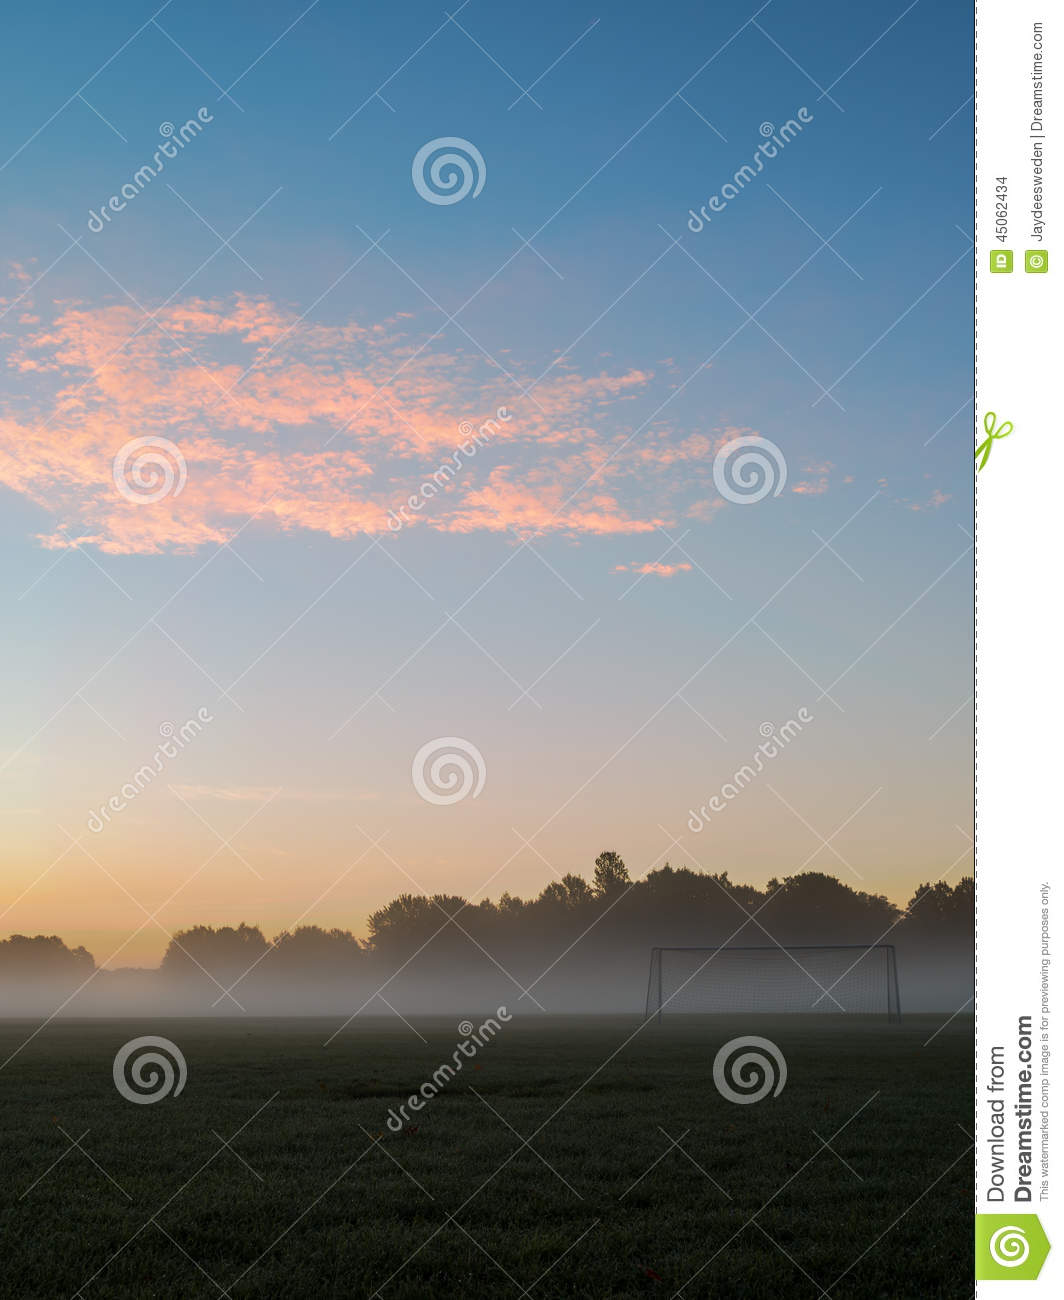 Pastel Sunrise Over Soccer Goal Stock Photo Image Of